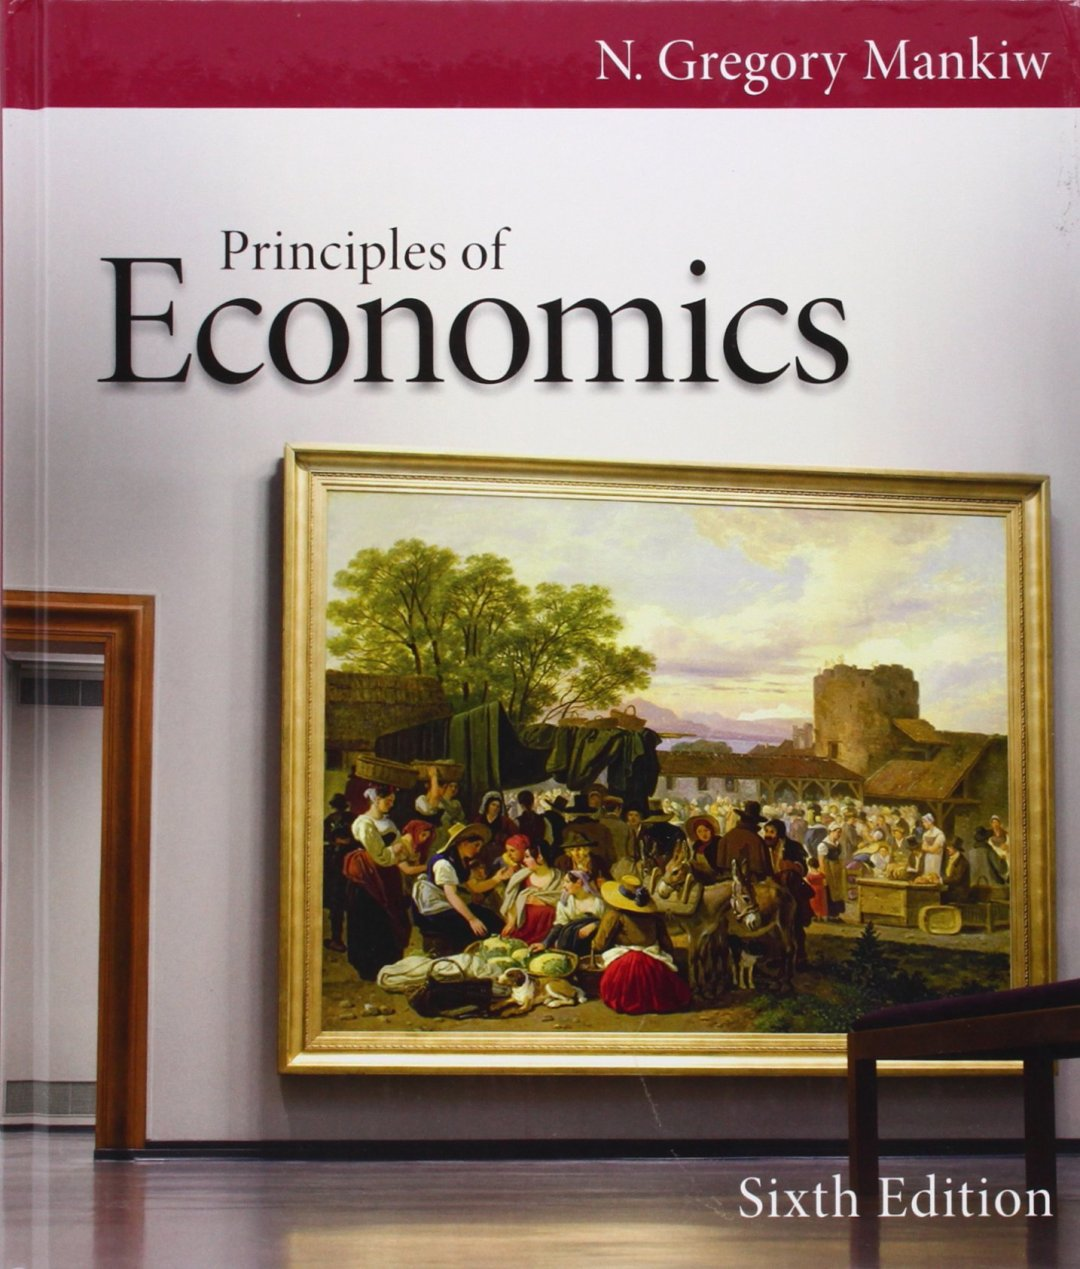 Principles of Economics by N. Gregory Mankiw